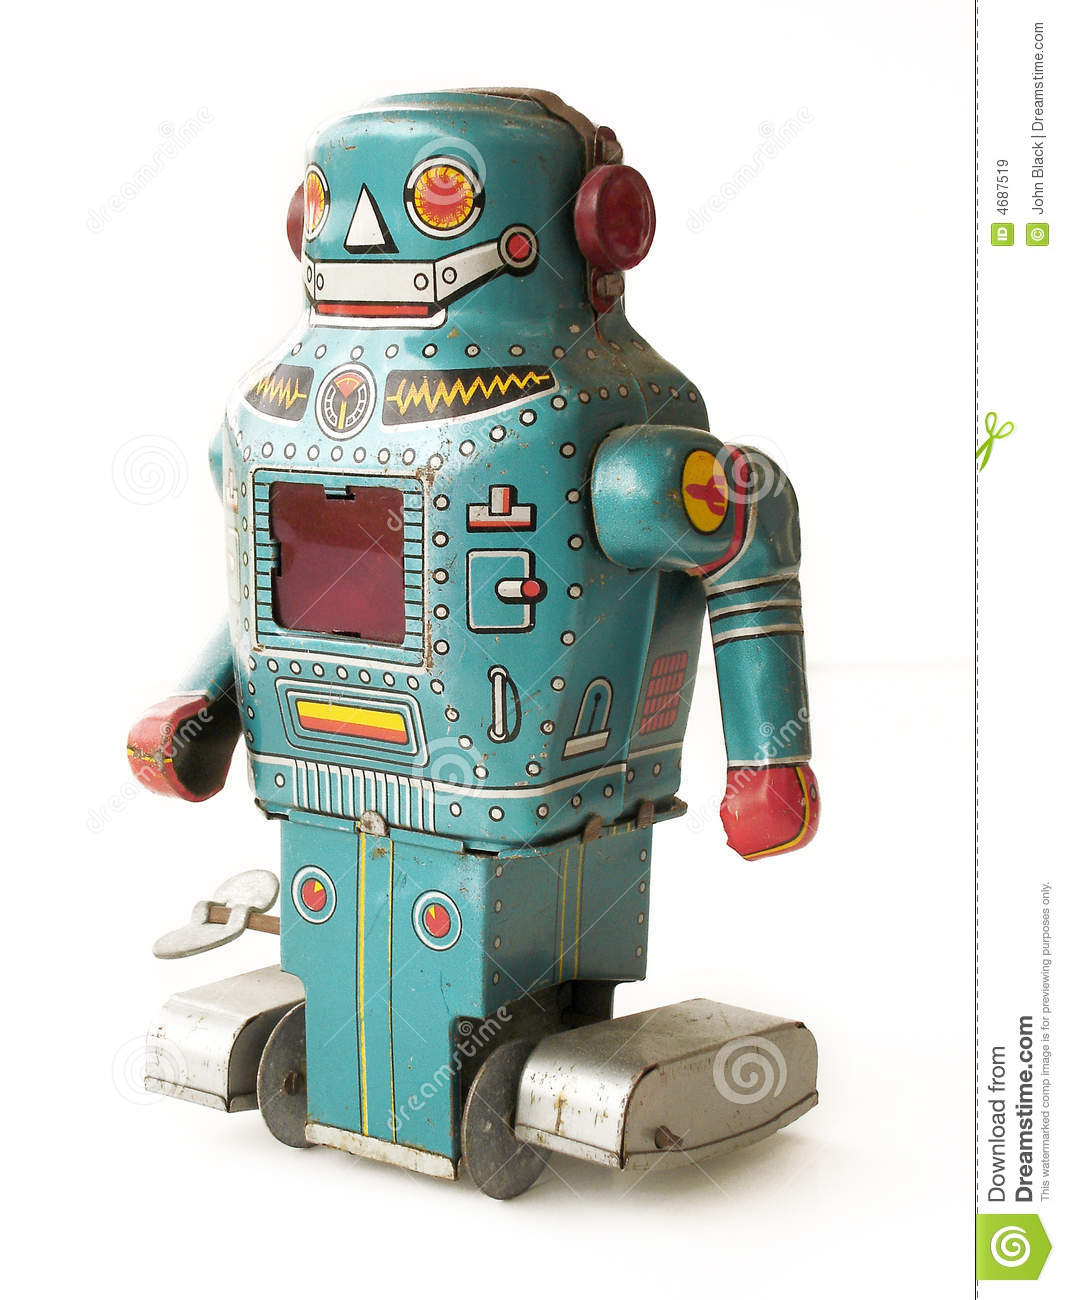 Old fashioned robot toys 17